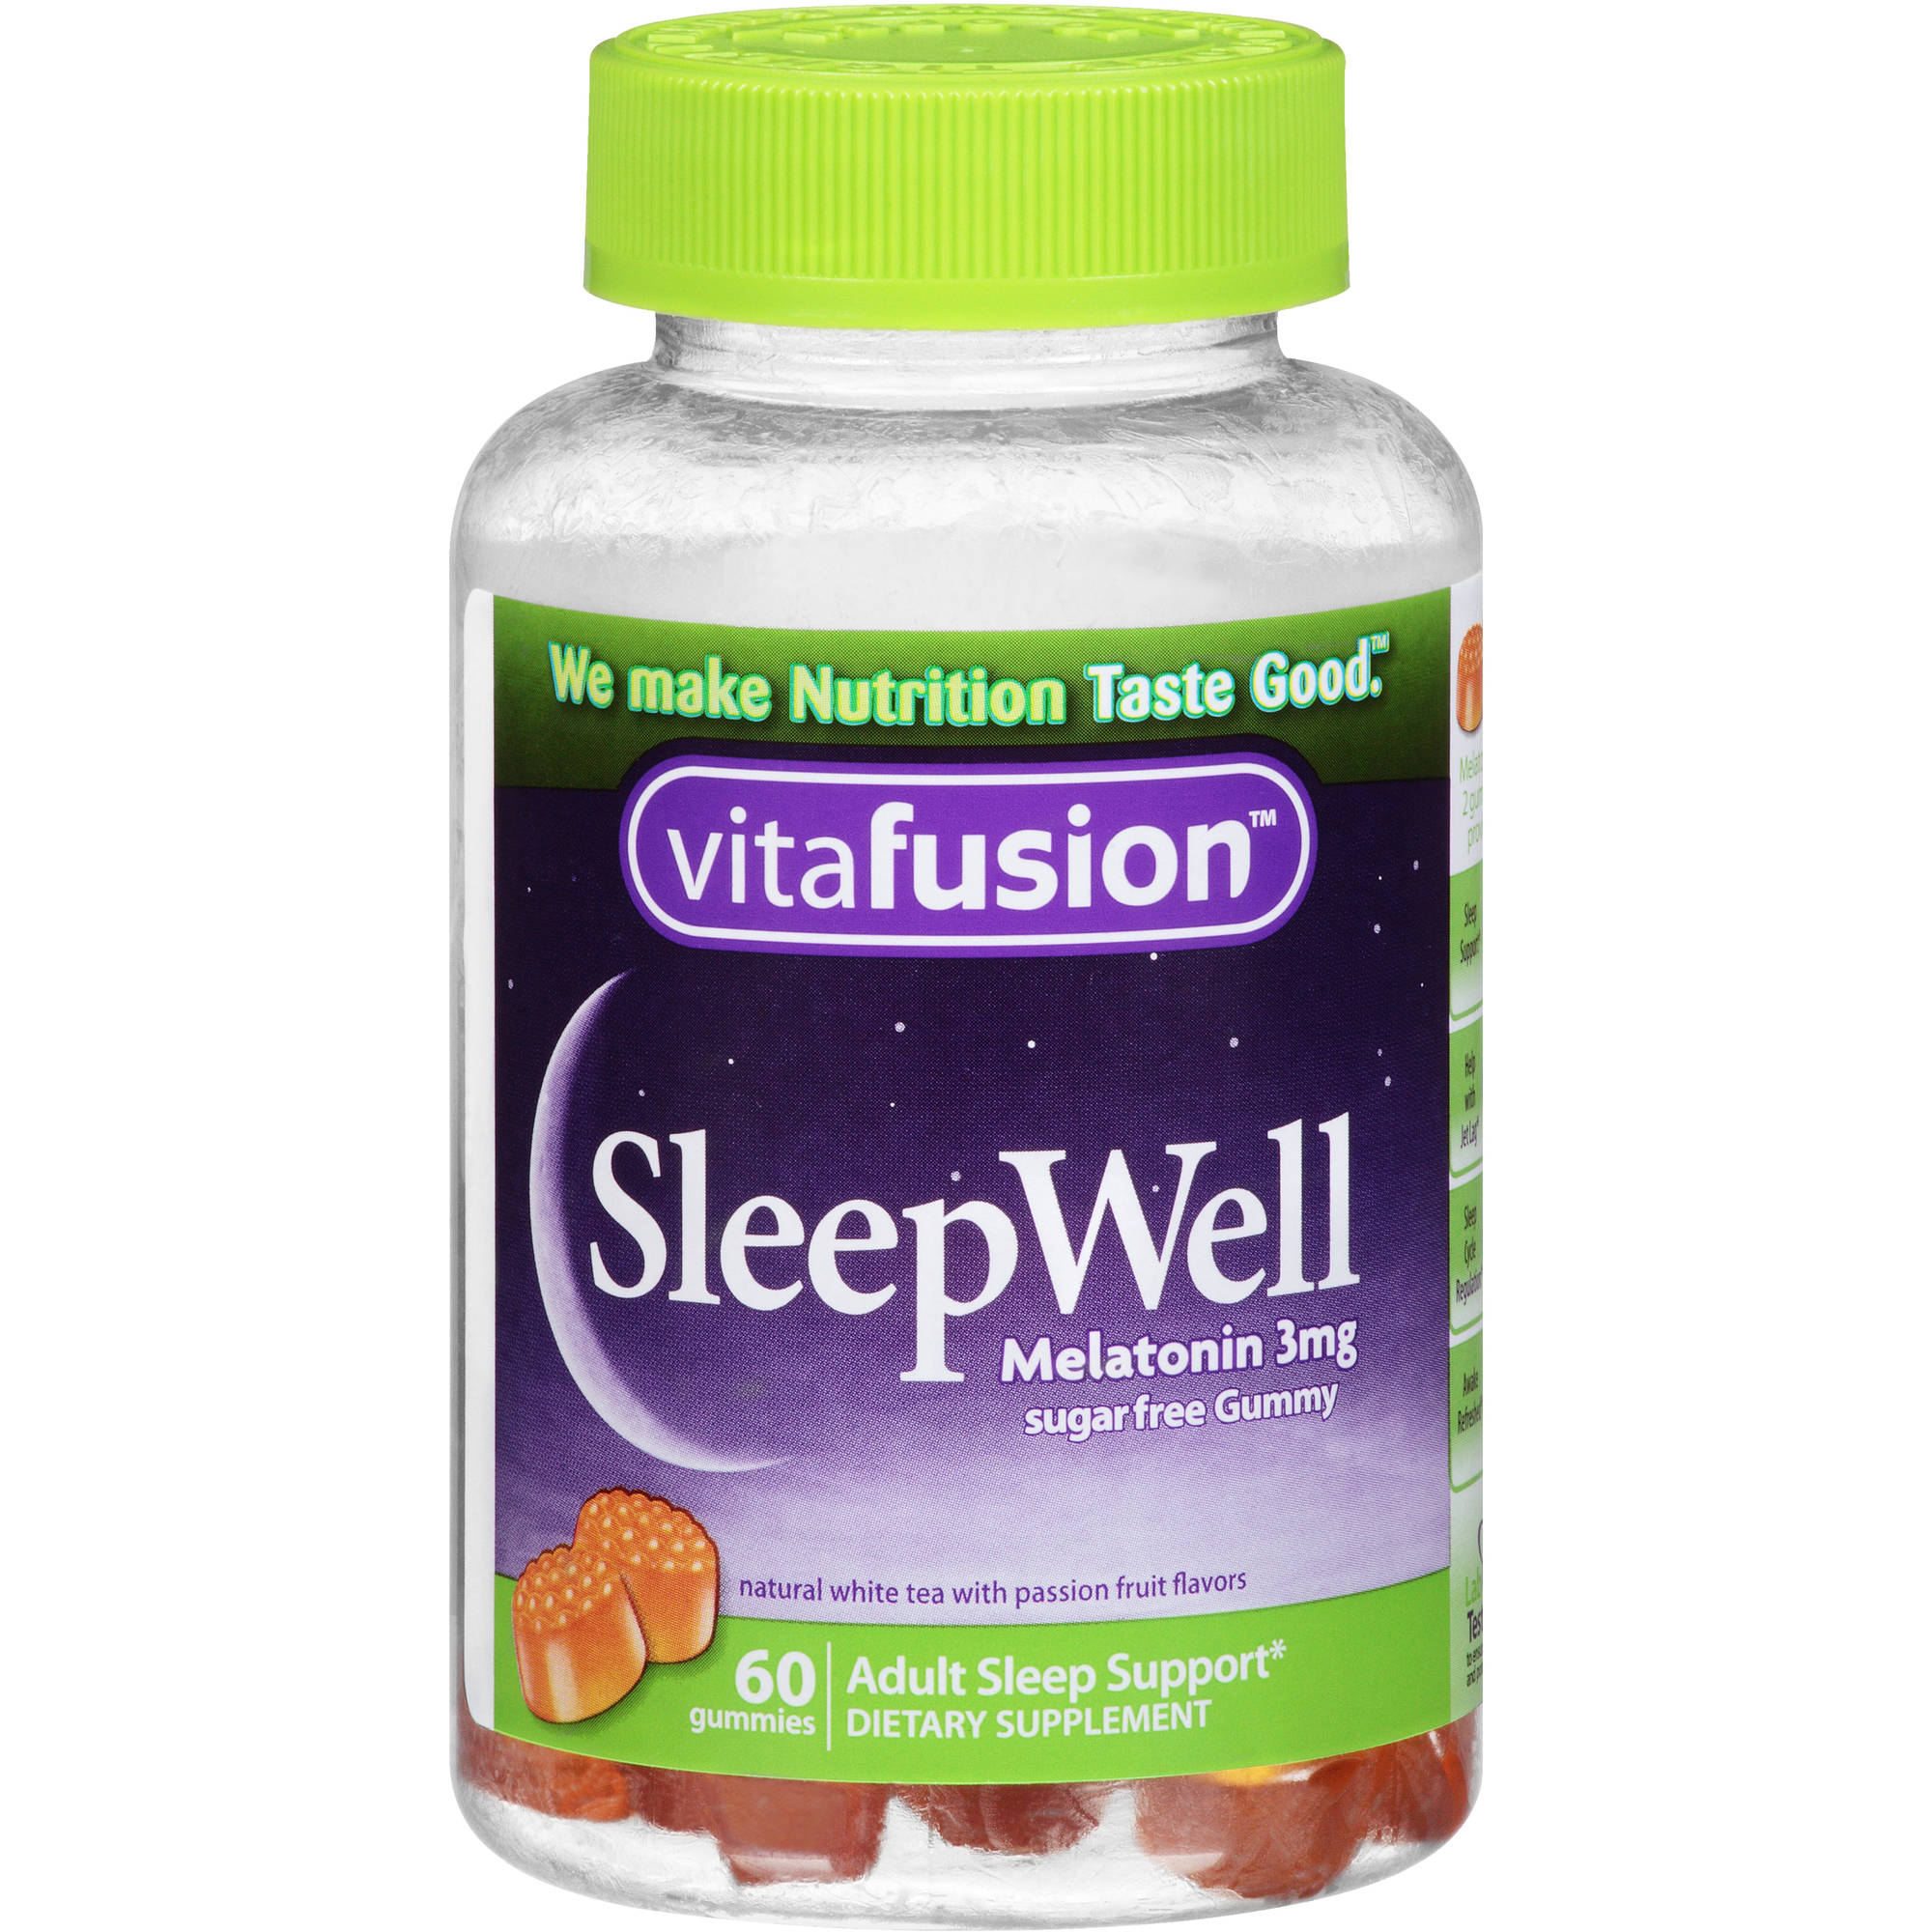 Vitafusion SleepWell Gummy Sleep Support for Adults, 60 count